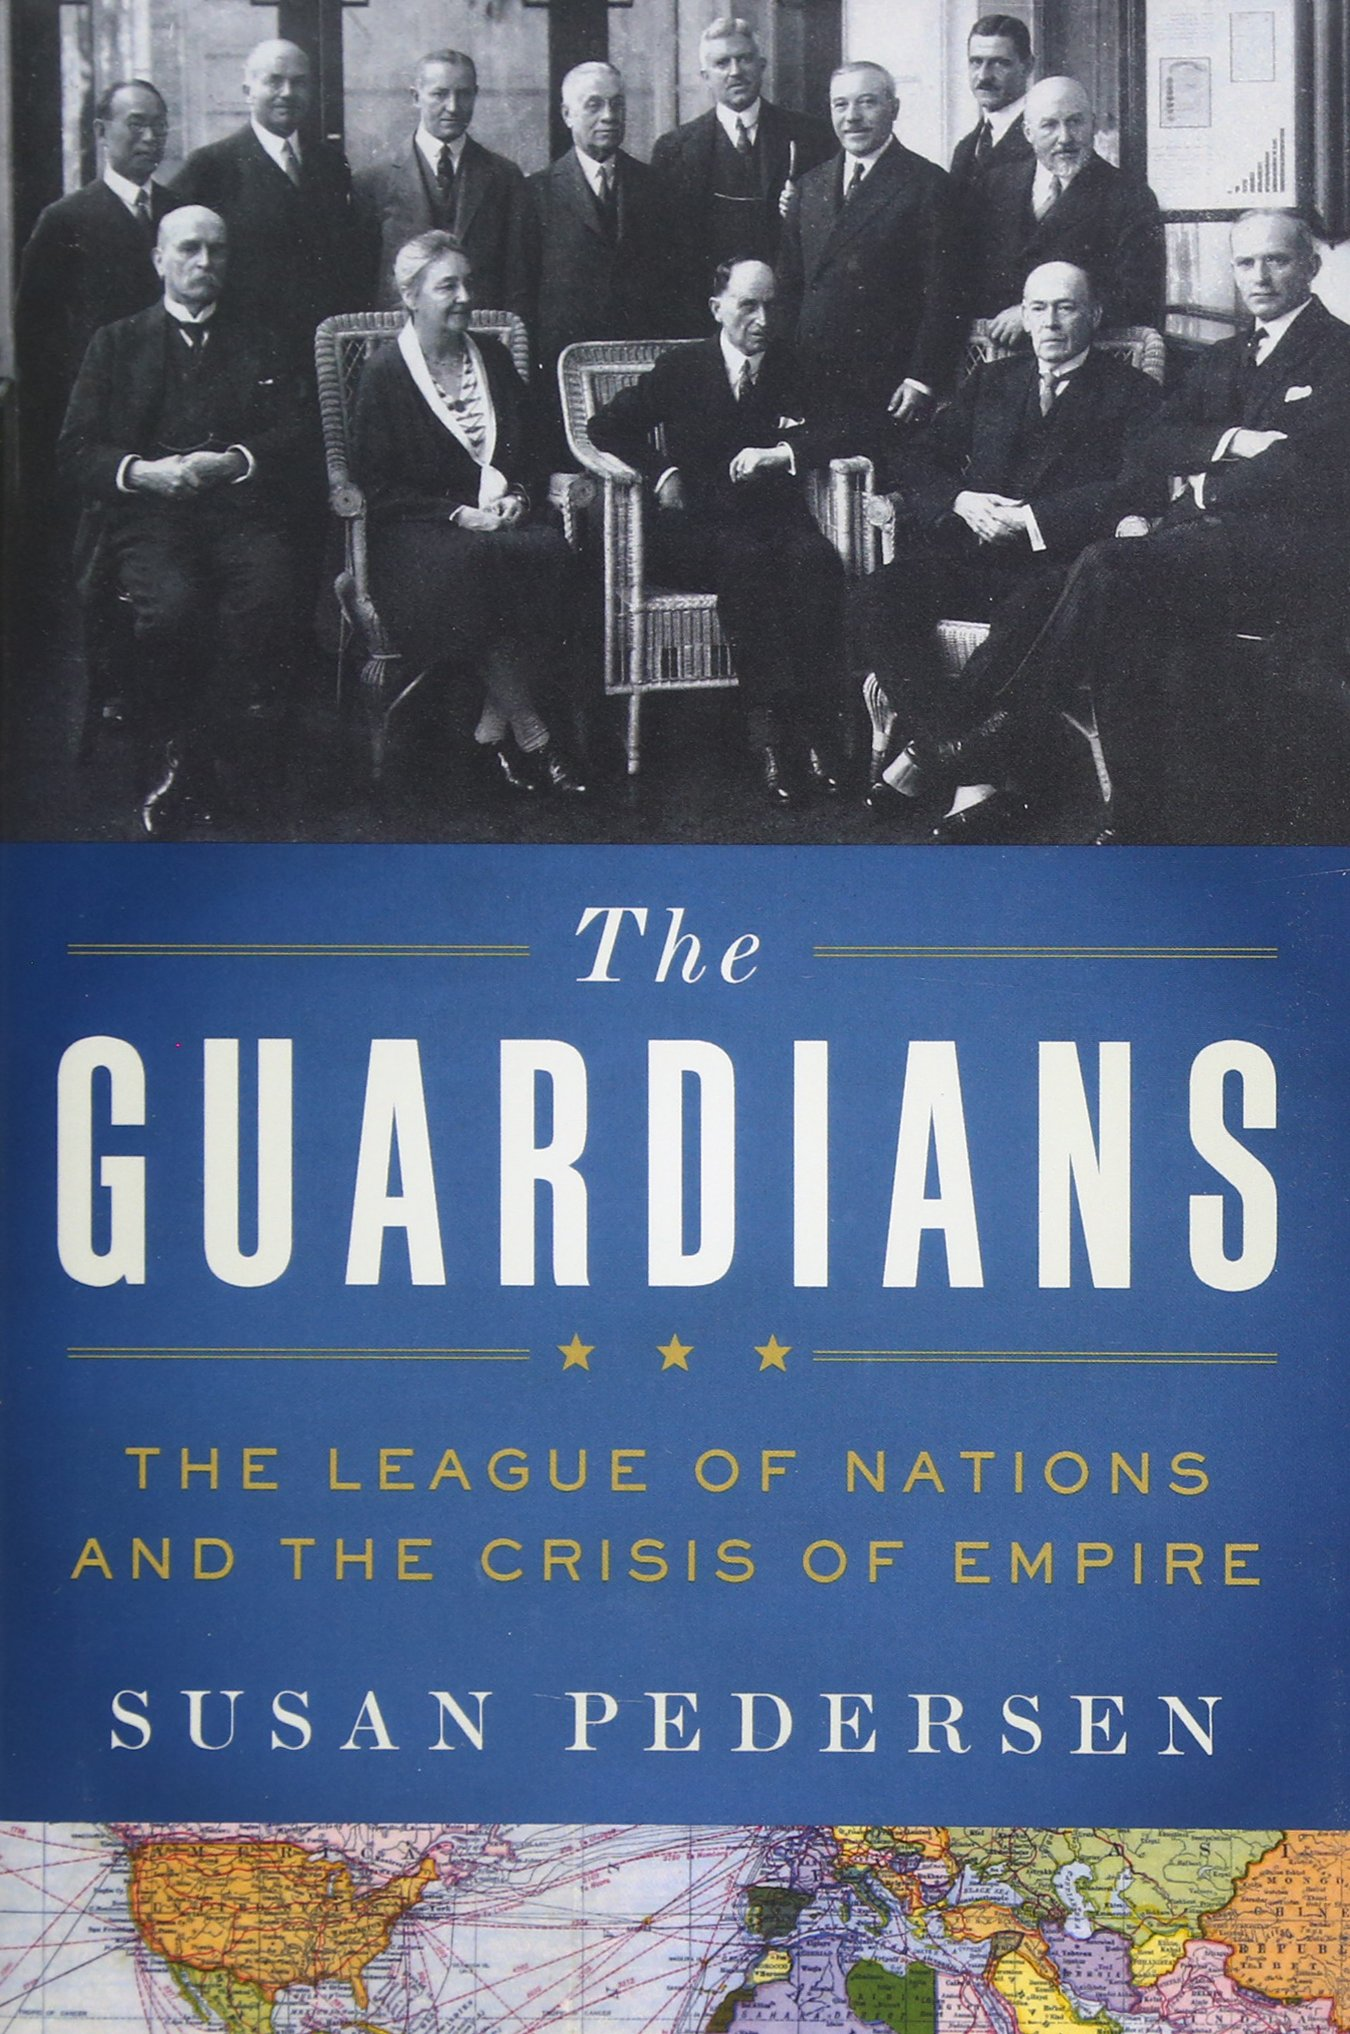 The Guardians: The League of Nations and the Crisis of